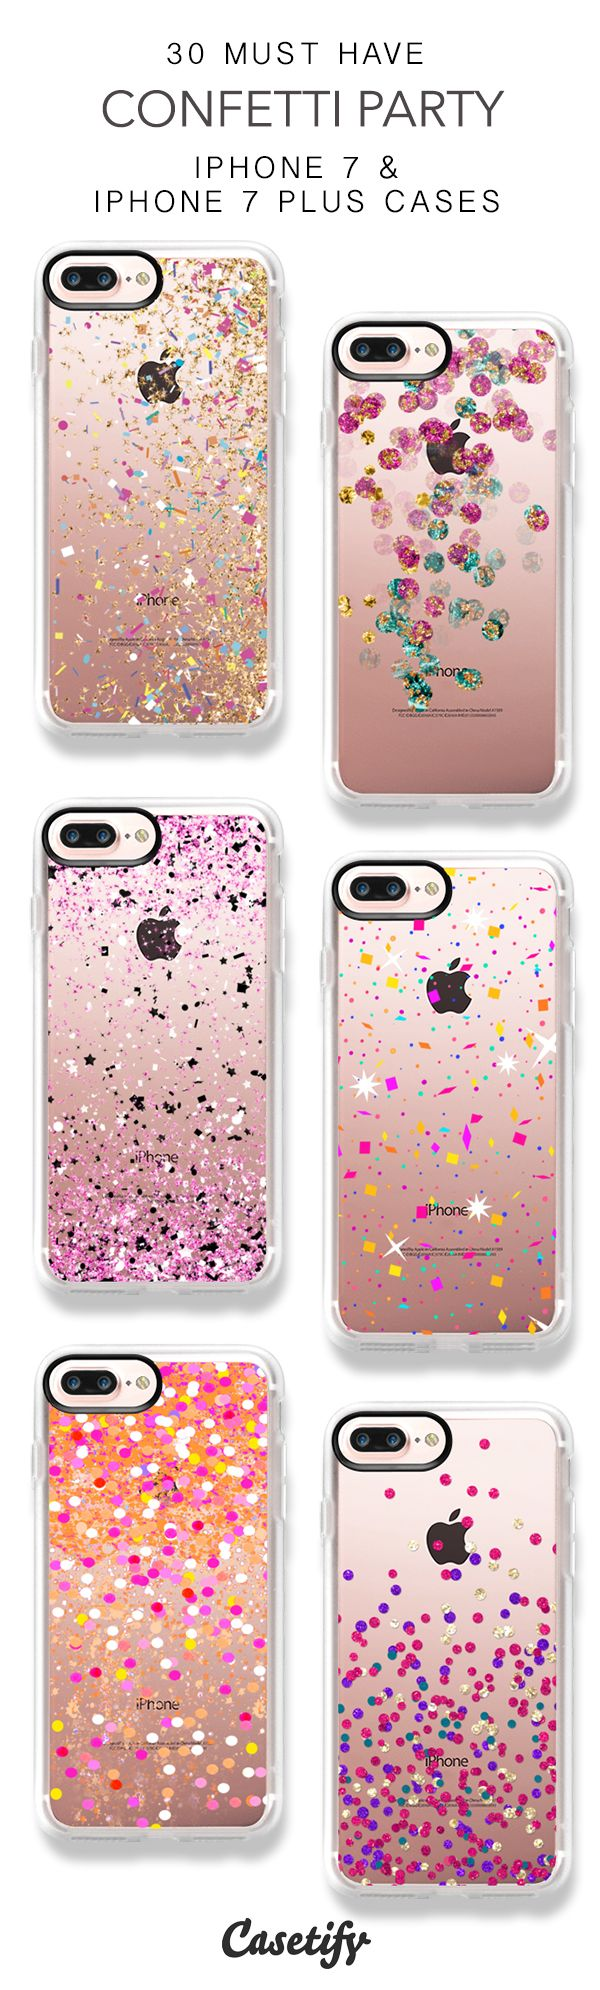 30 Must Have Confetti Party iPhone 7 Cases and iPhone 7 Plus Cases. More Sparkle iPhone case here > https://www.casetify.com/collections/top_100_designs#/?vc=elt9yFwejY